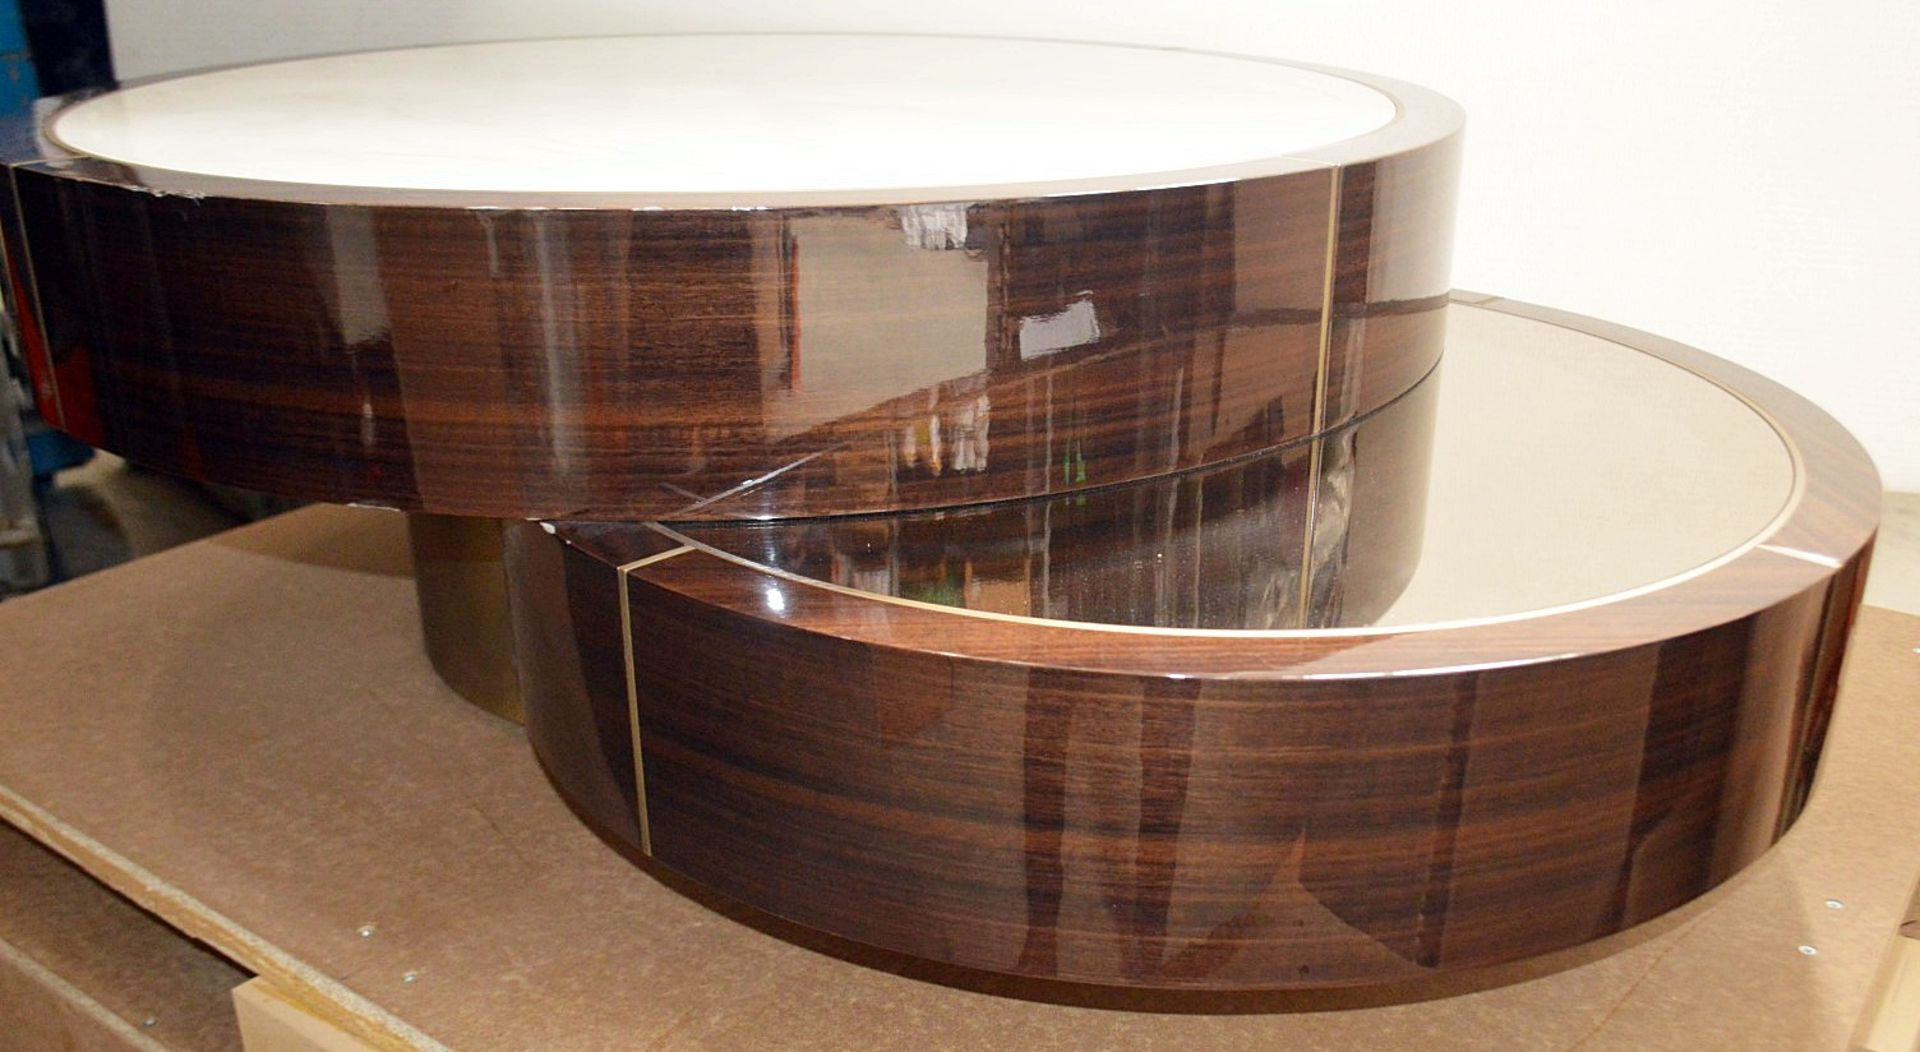 1 x FRATO 'Aarhus' Luxury Coffee Table Topped With Marble With High Gloss Finish - RRP £6,611 - Image 9 of 9